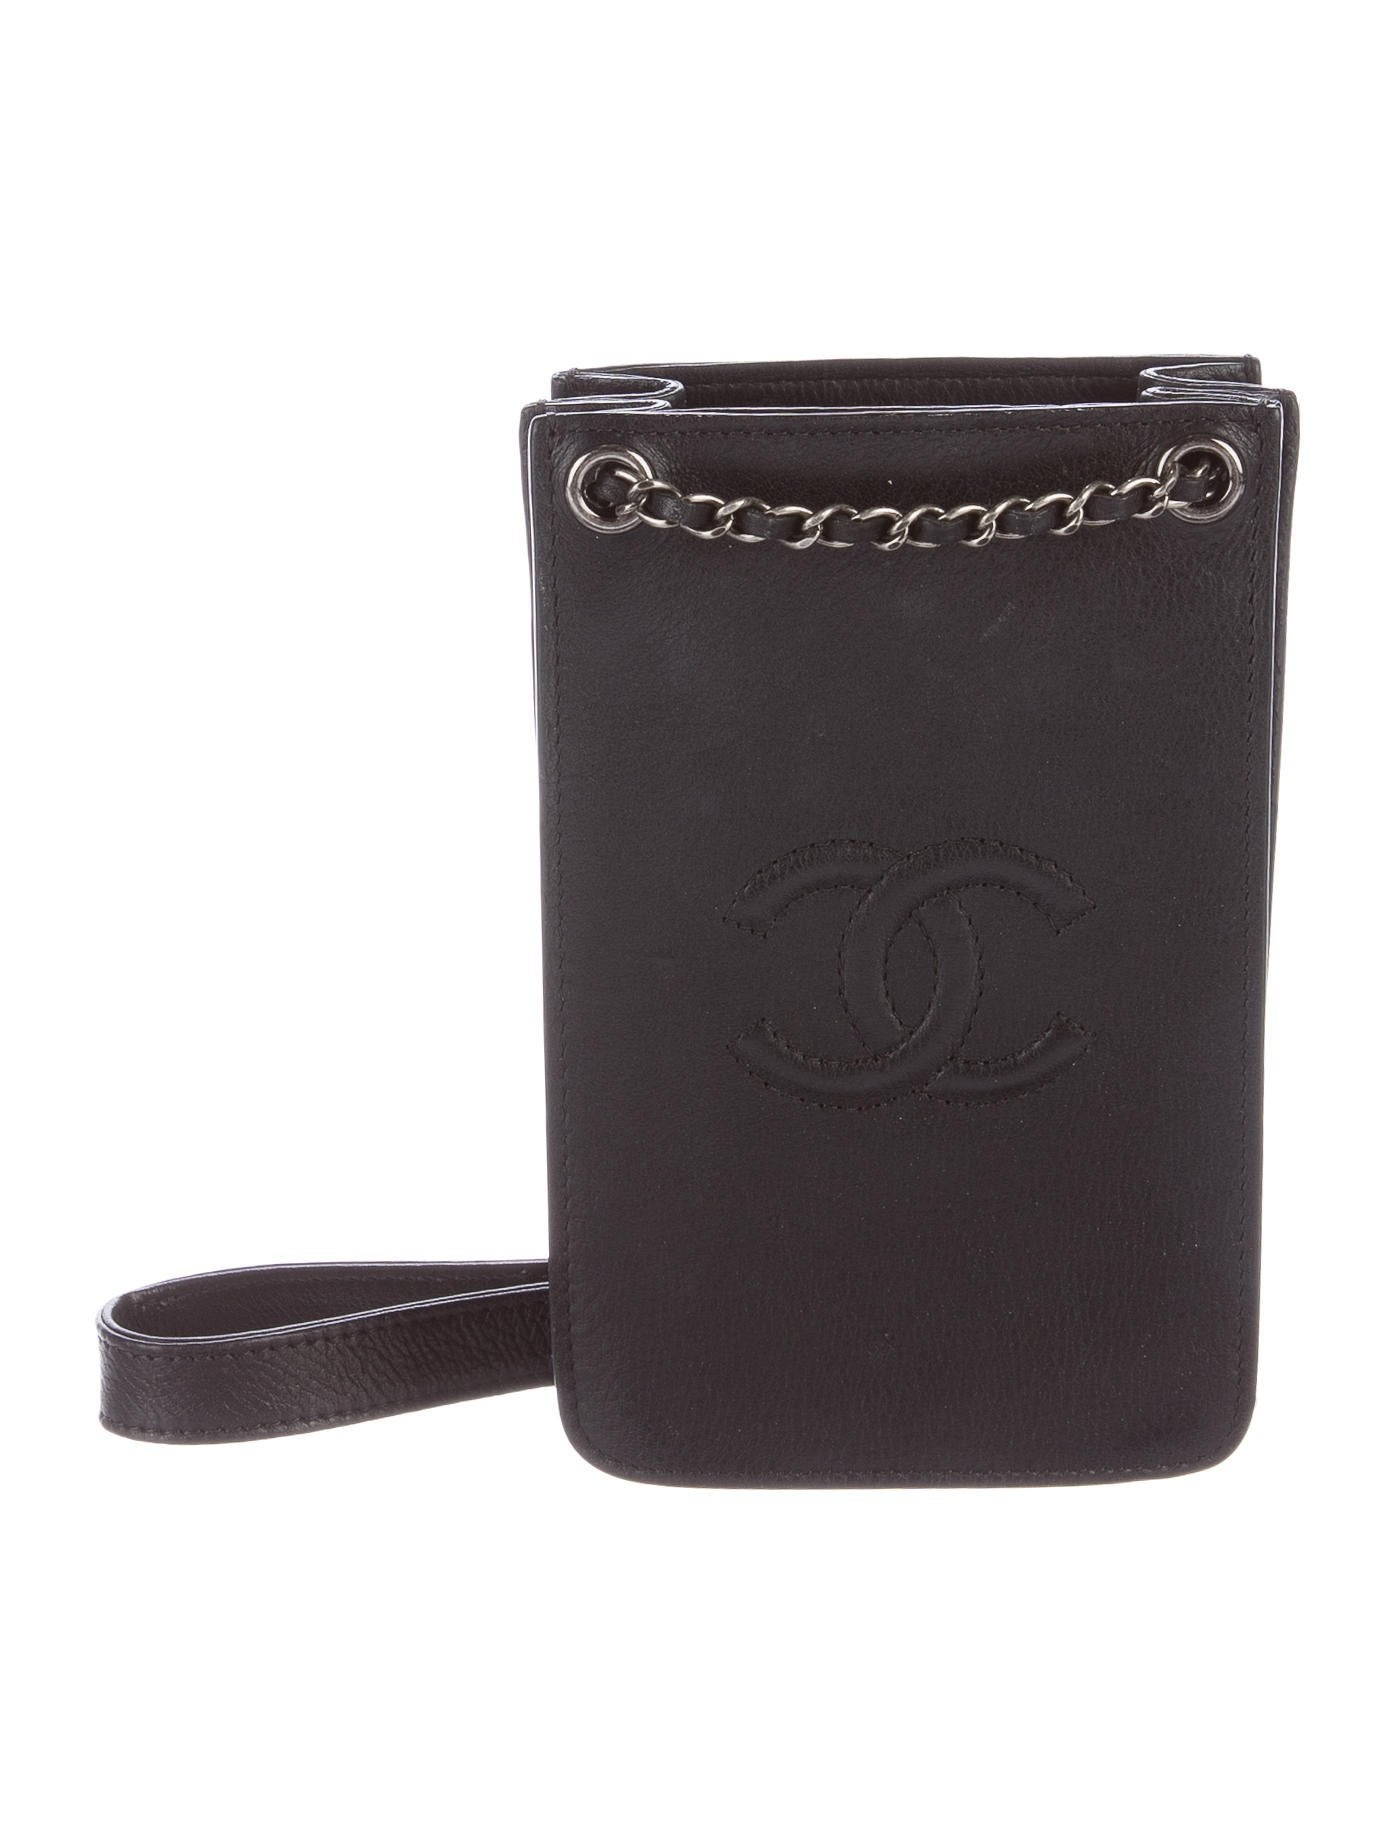 Chanel Crossbody Phone Holder - Accessories - CHA186962 ...